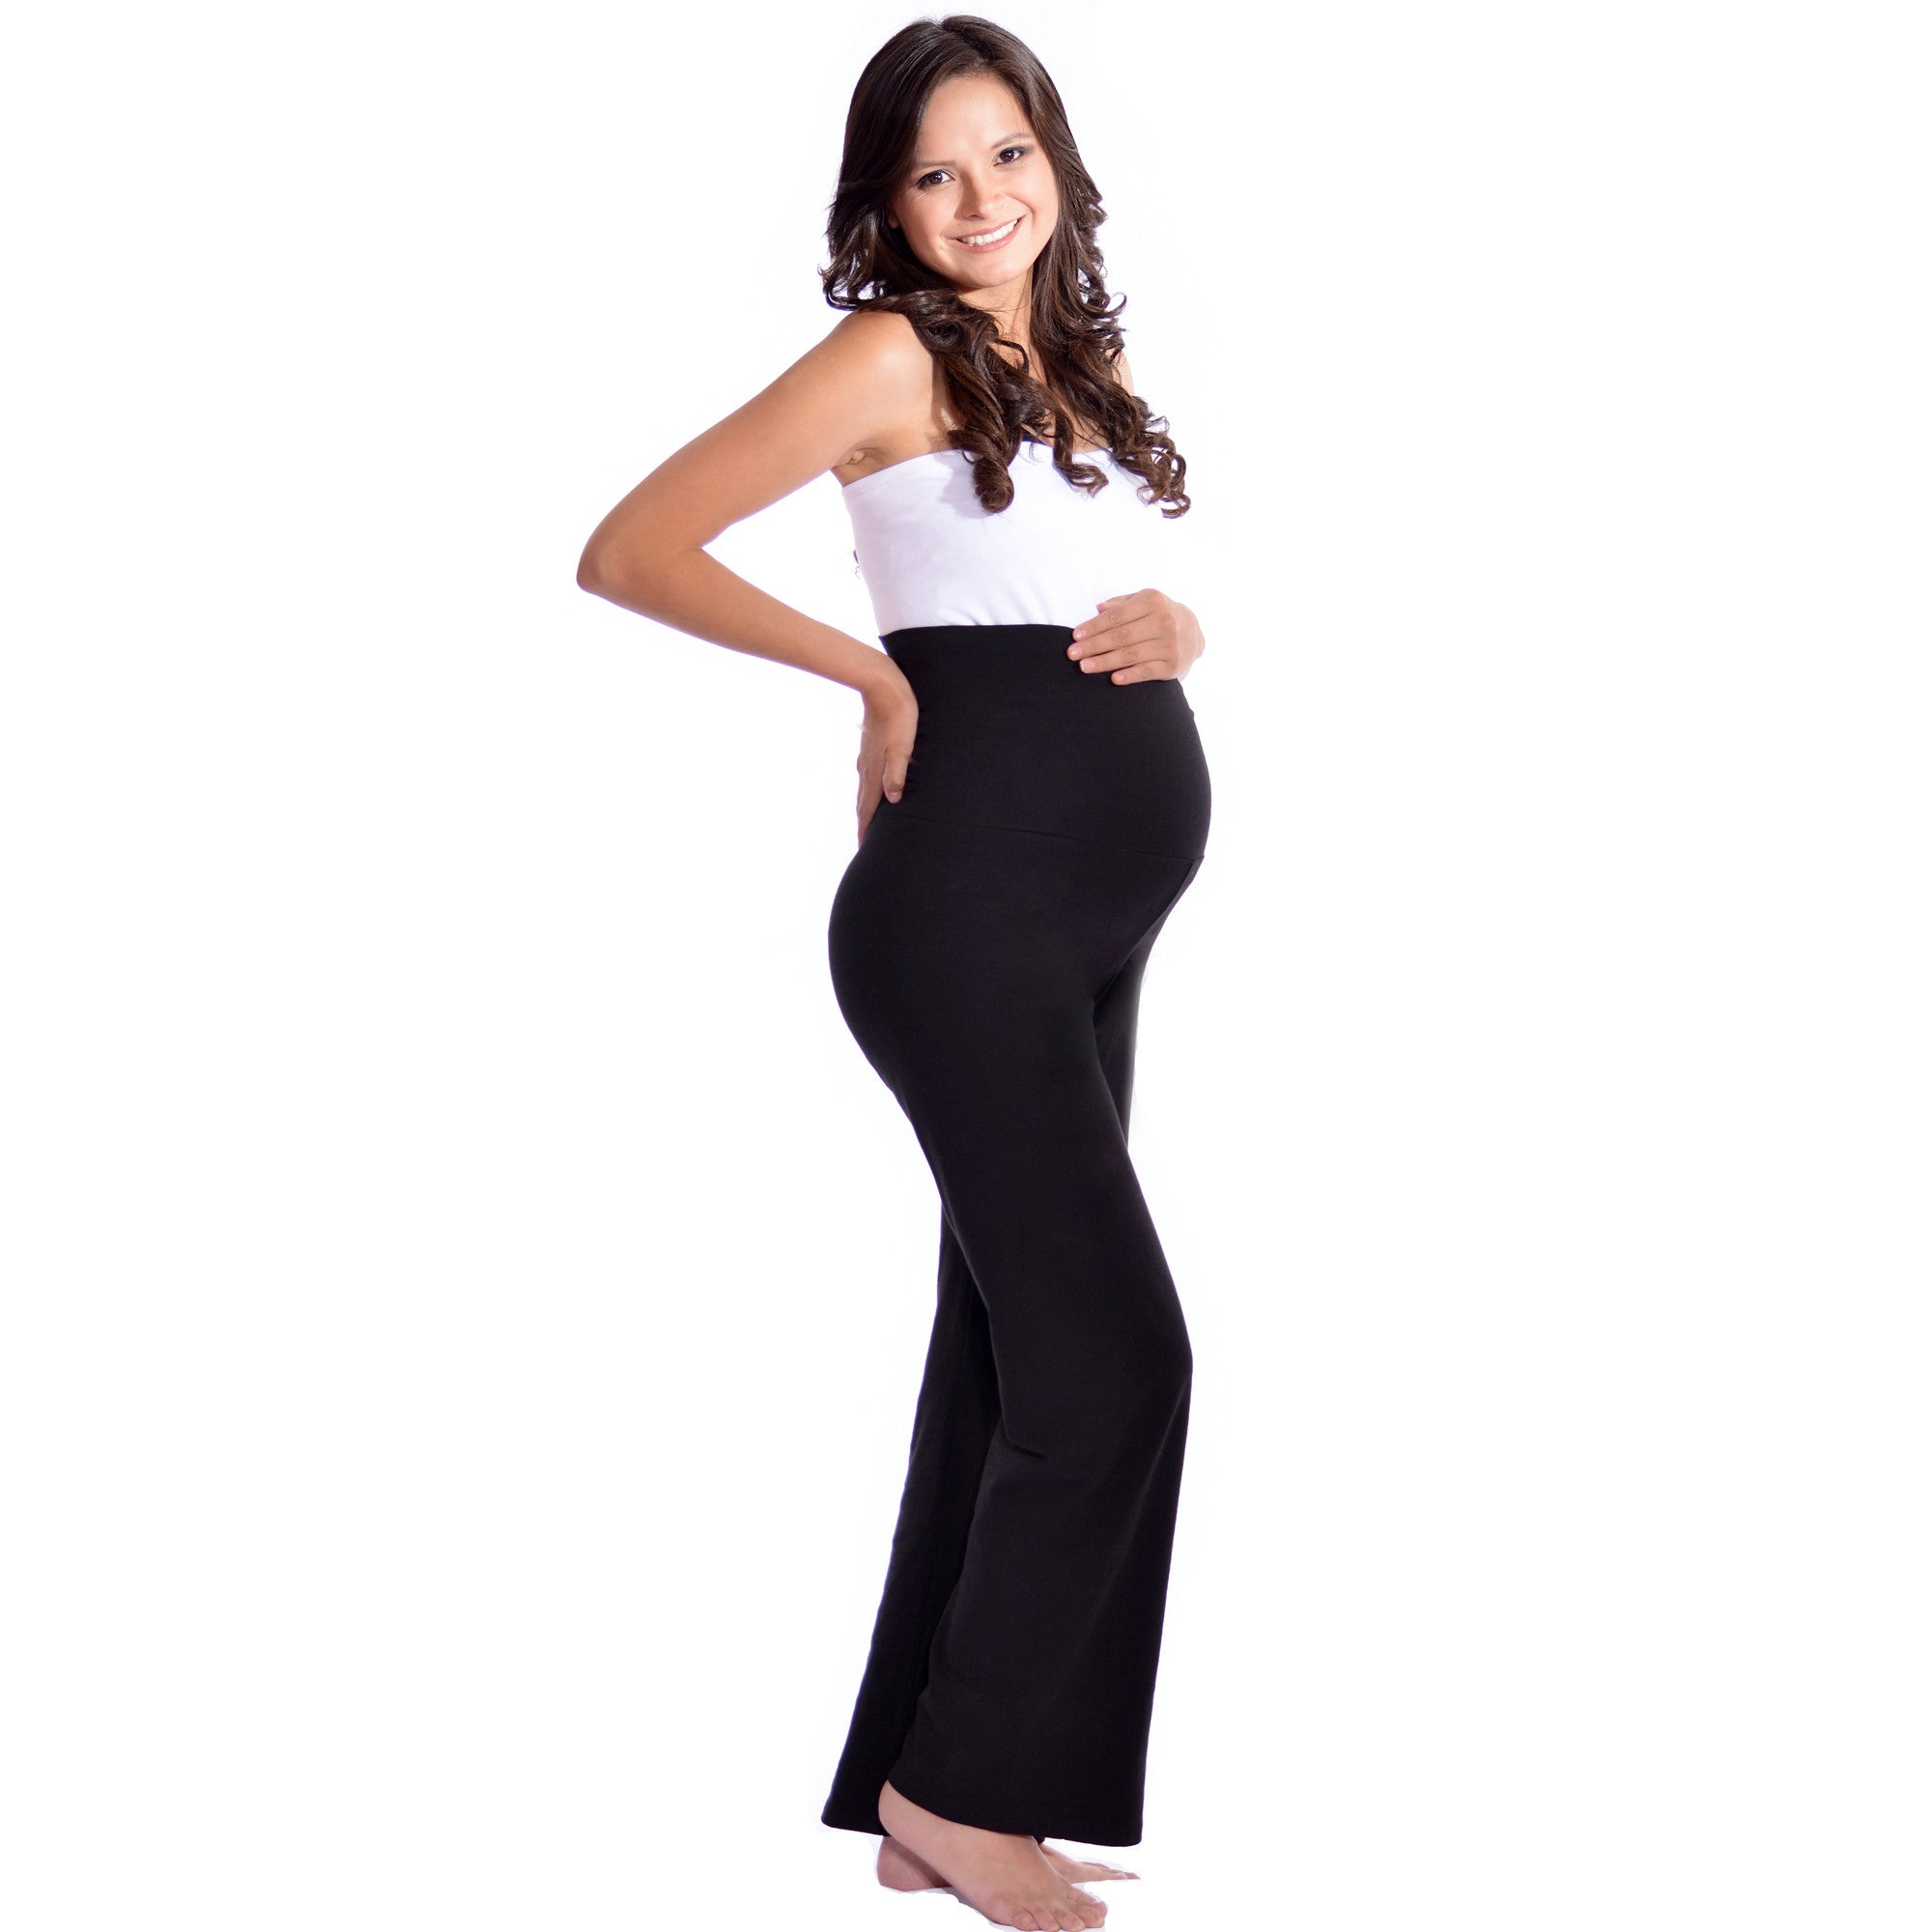 57843753994b7 Maternity Yoga Pants for Tall Women (if your height is 5'9